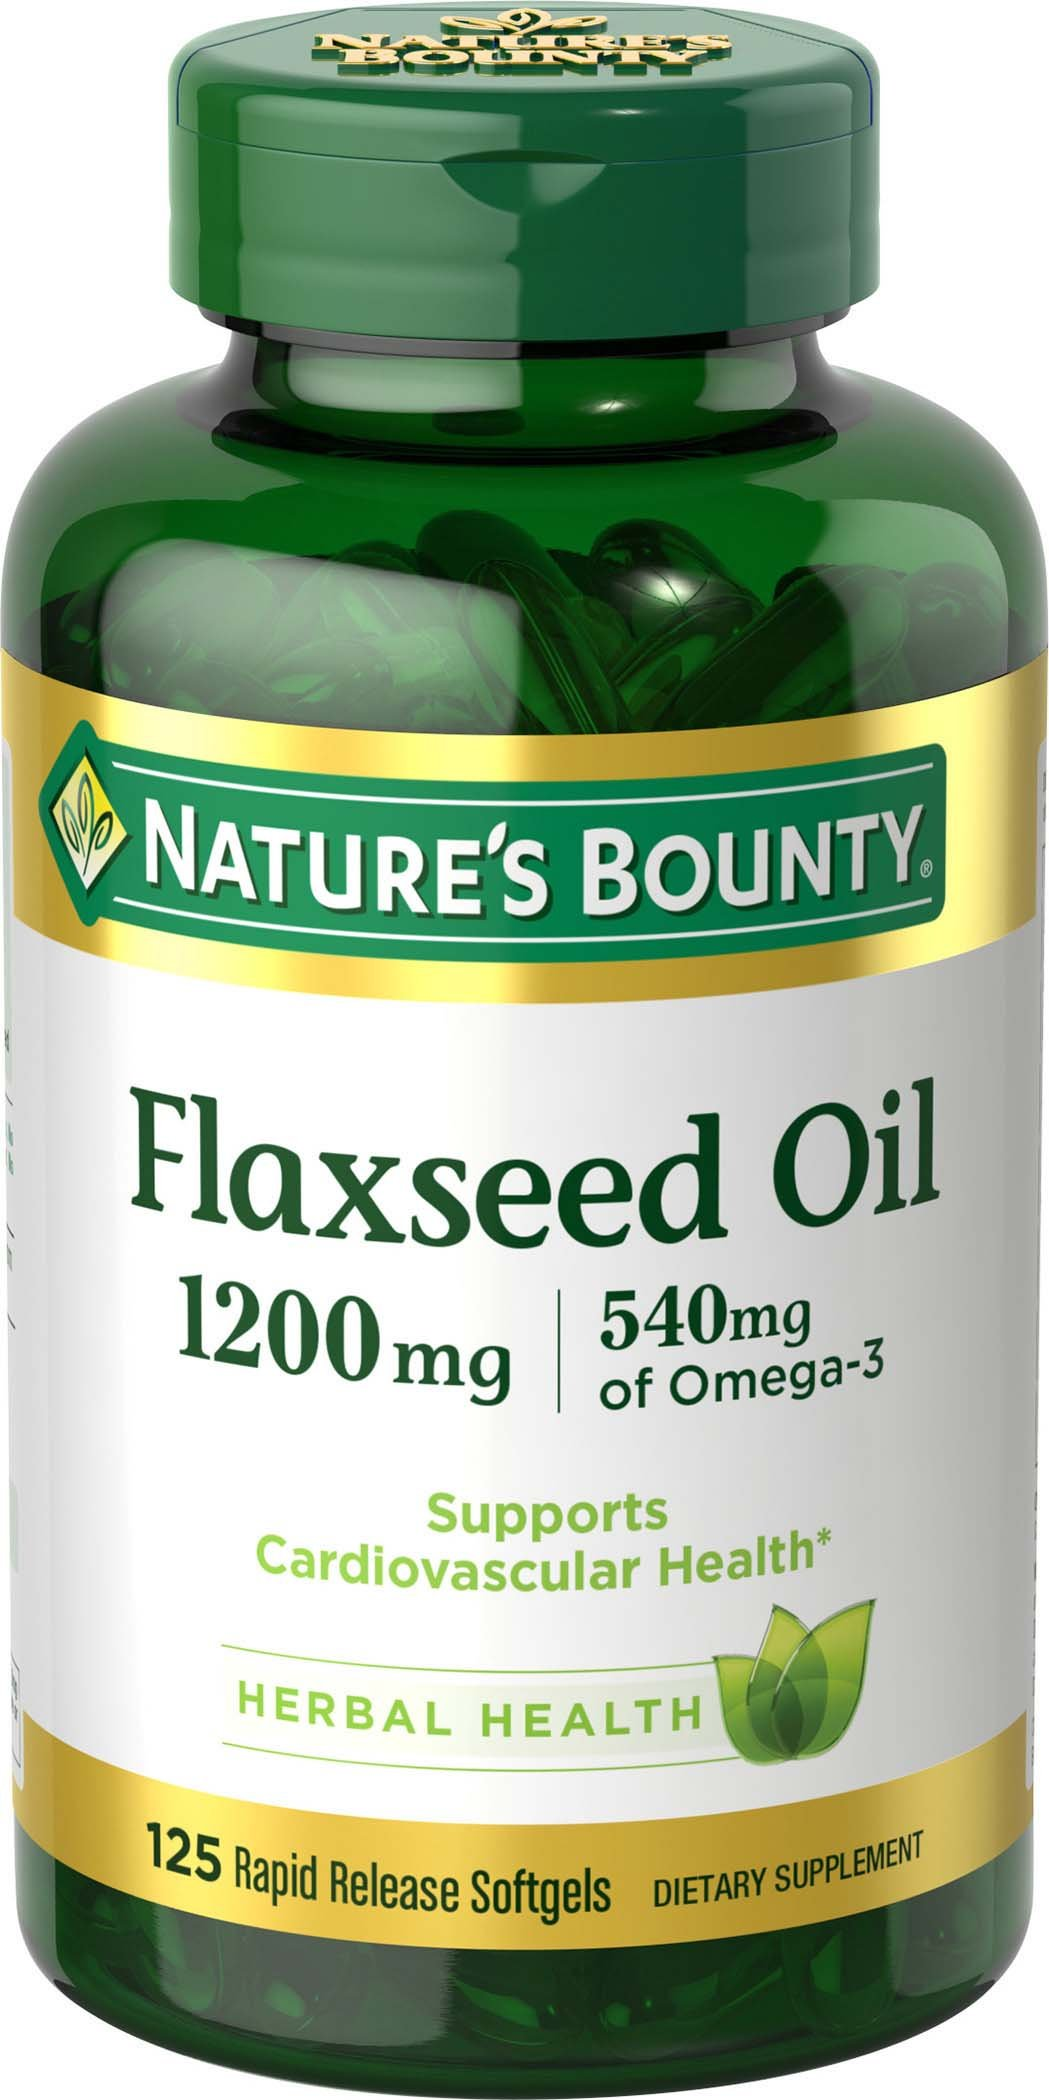 Nature's Bounty Flaxseed Oil 1200 mg, 125 Rapid Release Softgels, Pack of 2 by Nature's Bounty